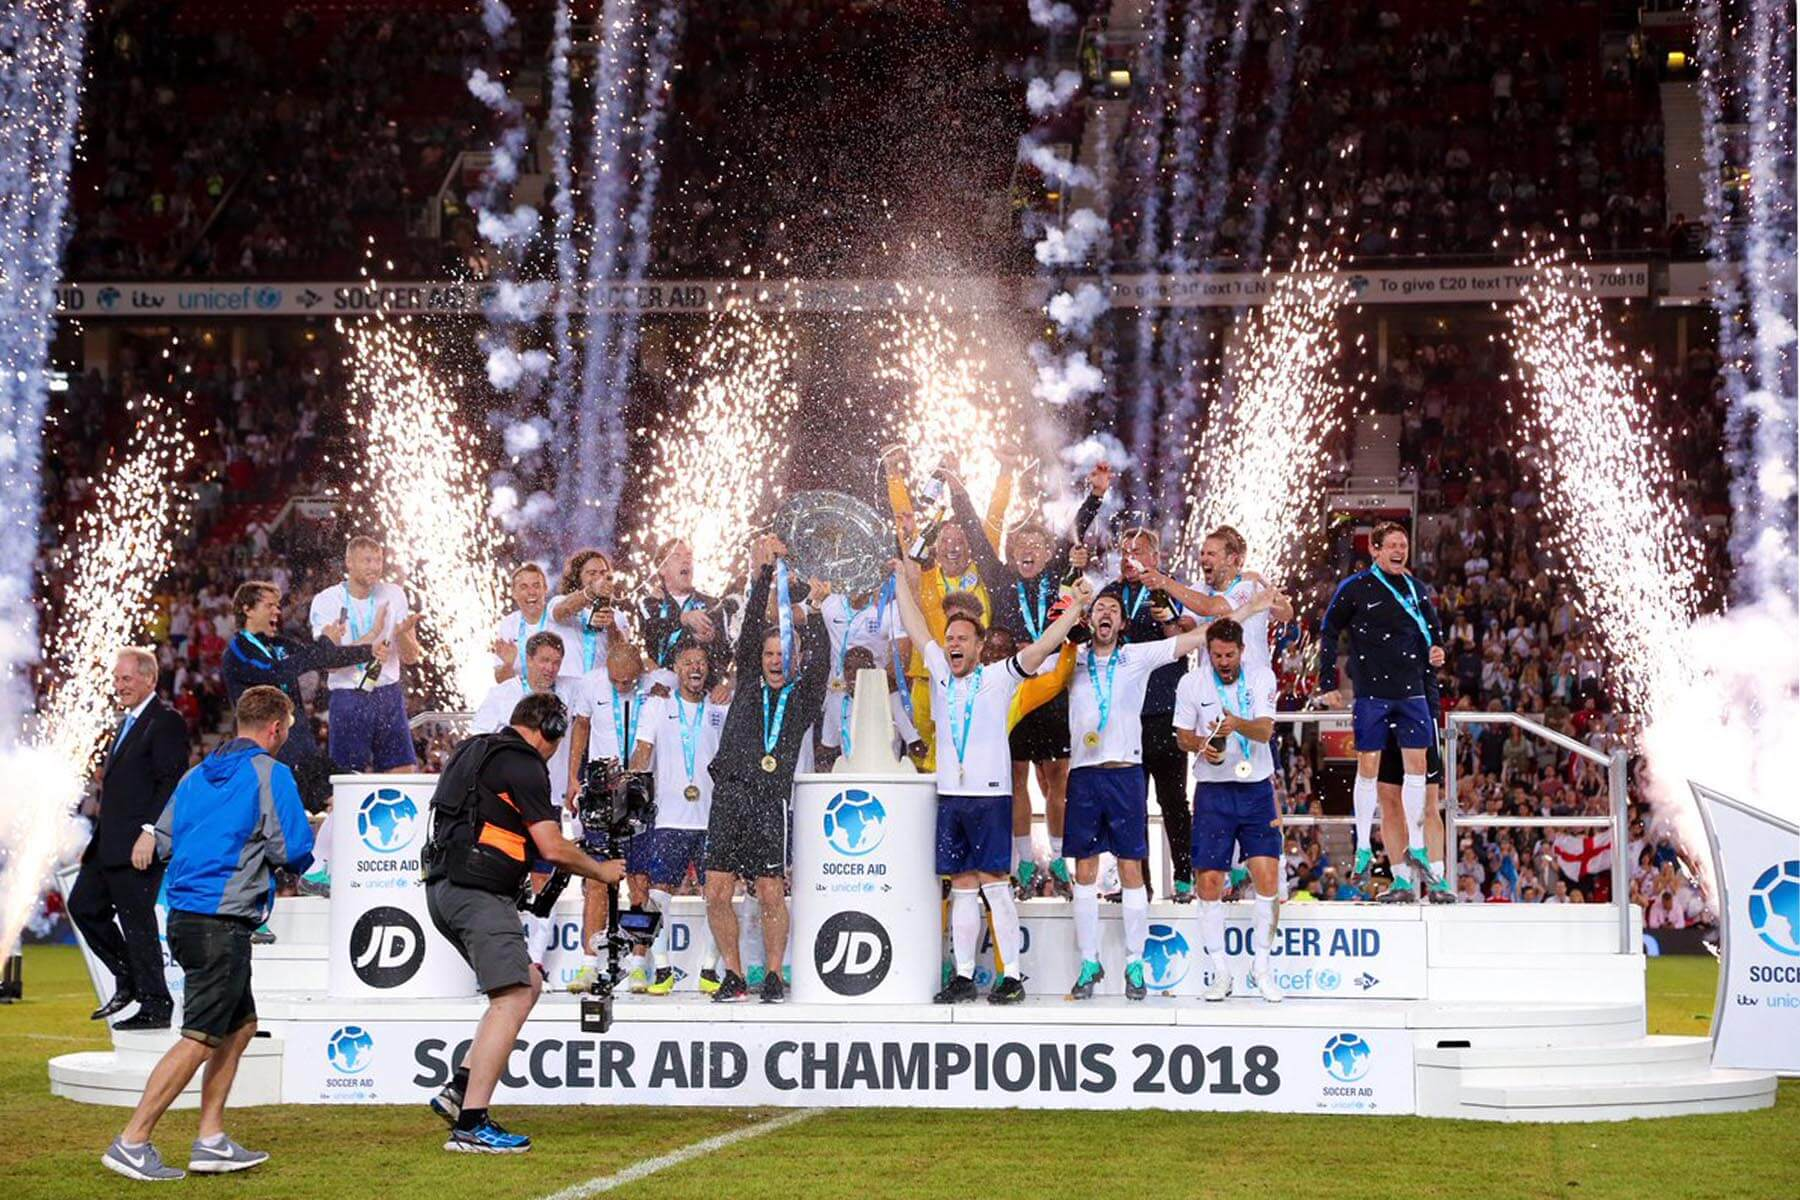 2 Tier Large Presentation Stage at Soccer Aid 2018